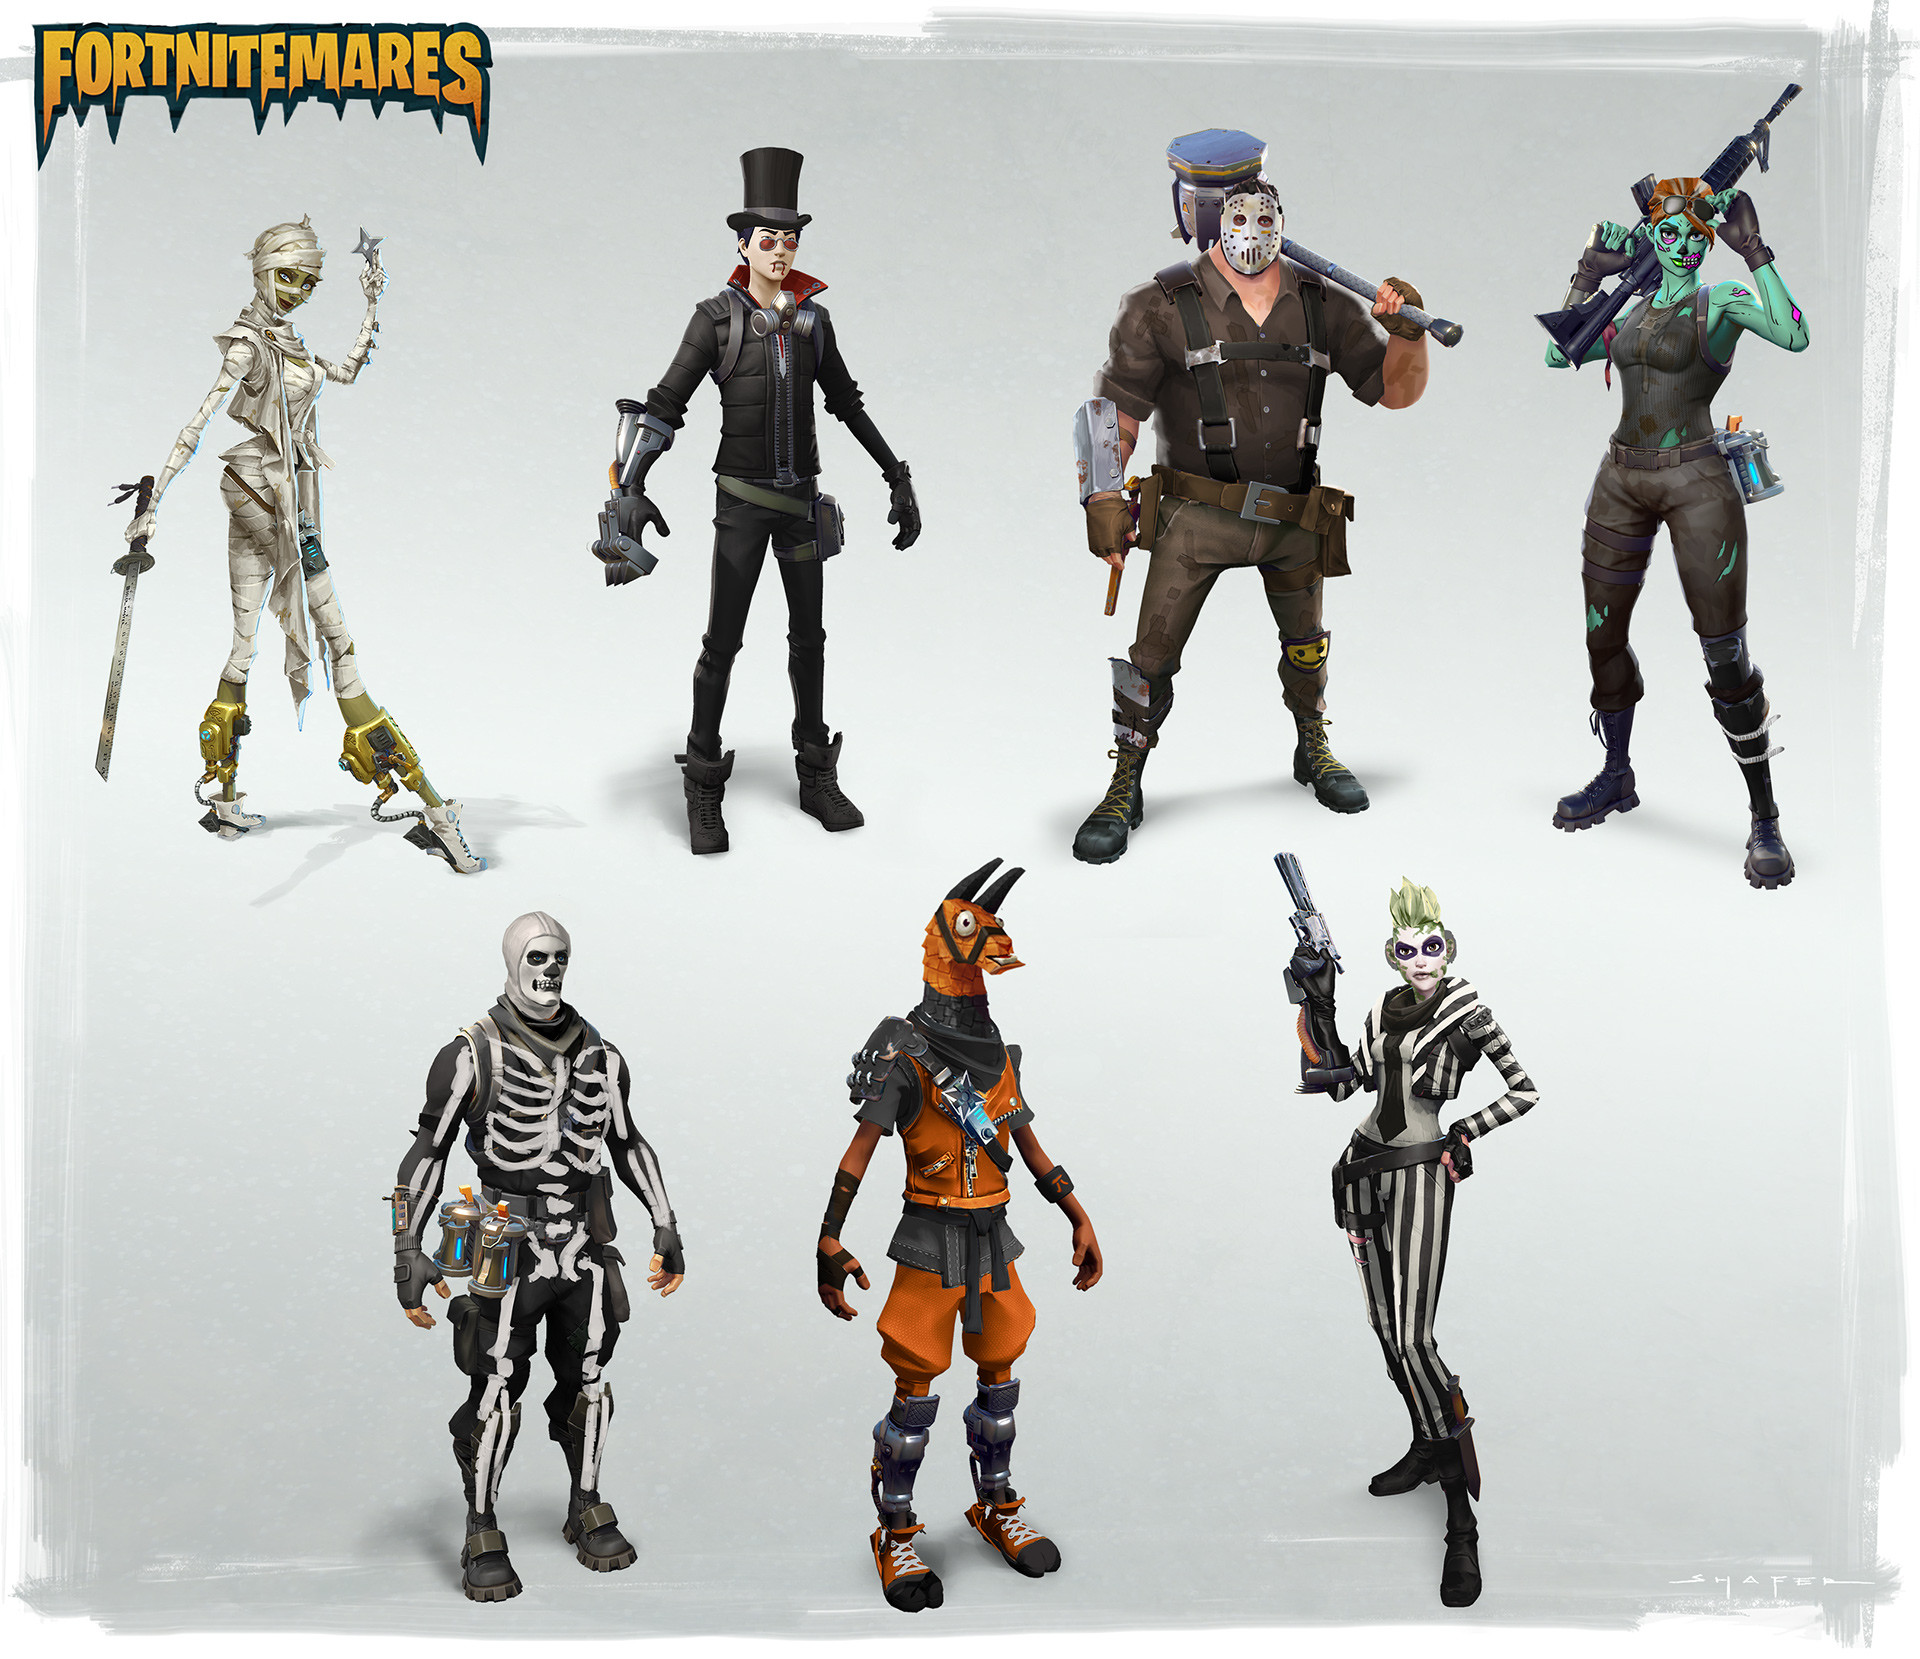 Halloween skin concepts for Save the World and a couple of them were in Battle Royale as well.